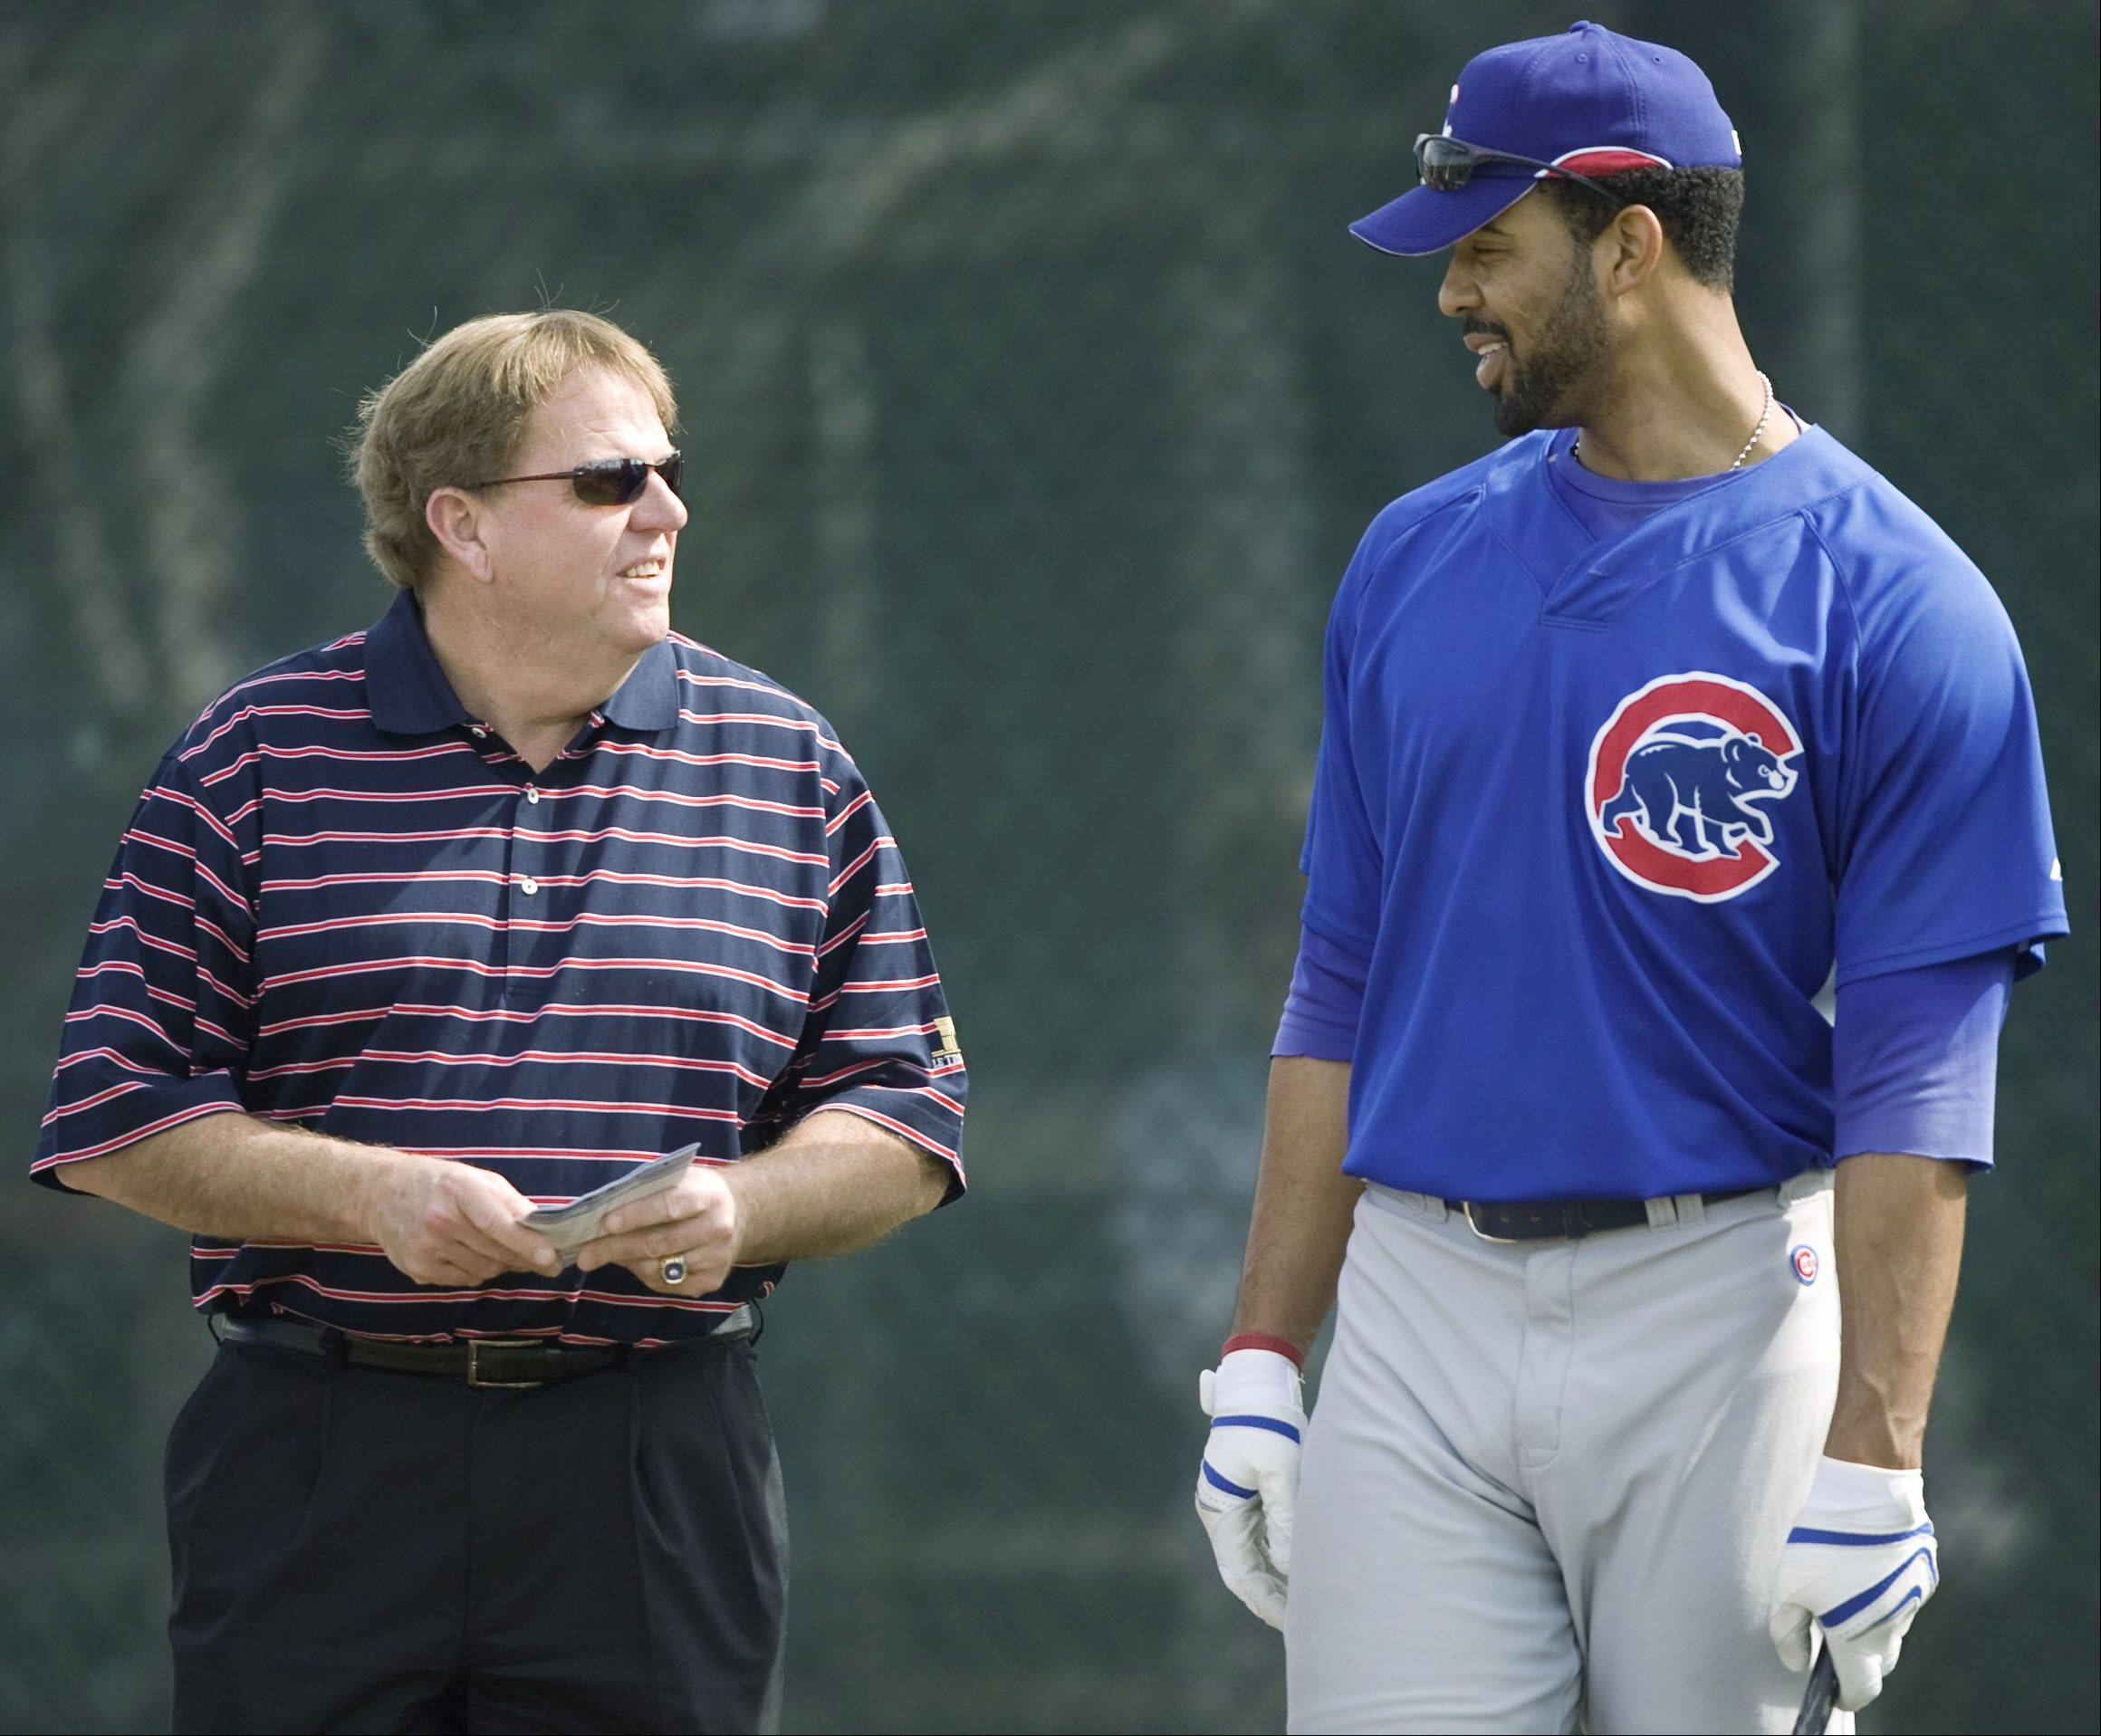 Hendry's legacy with Cubs a mixed bag